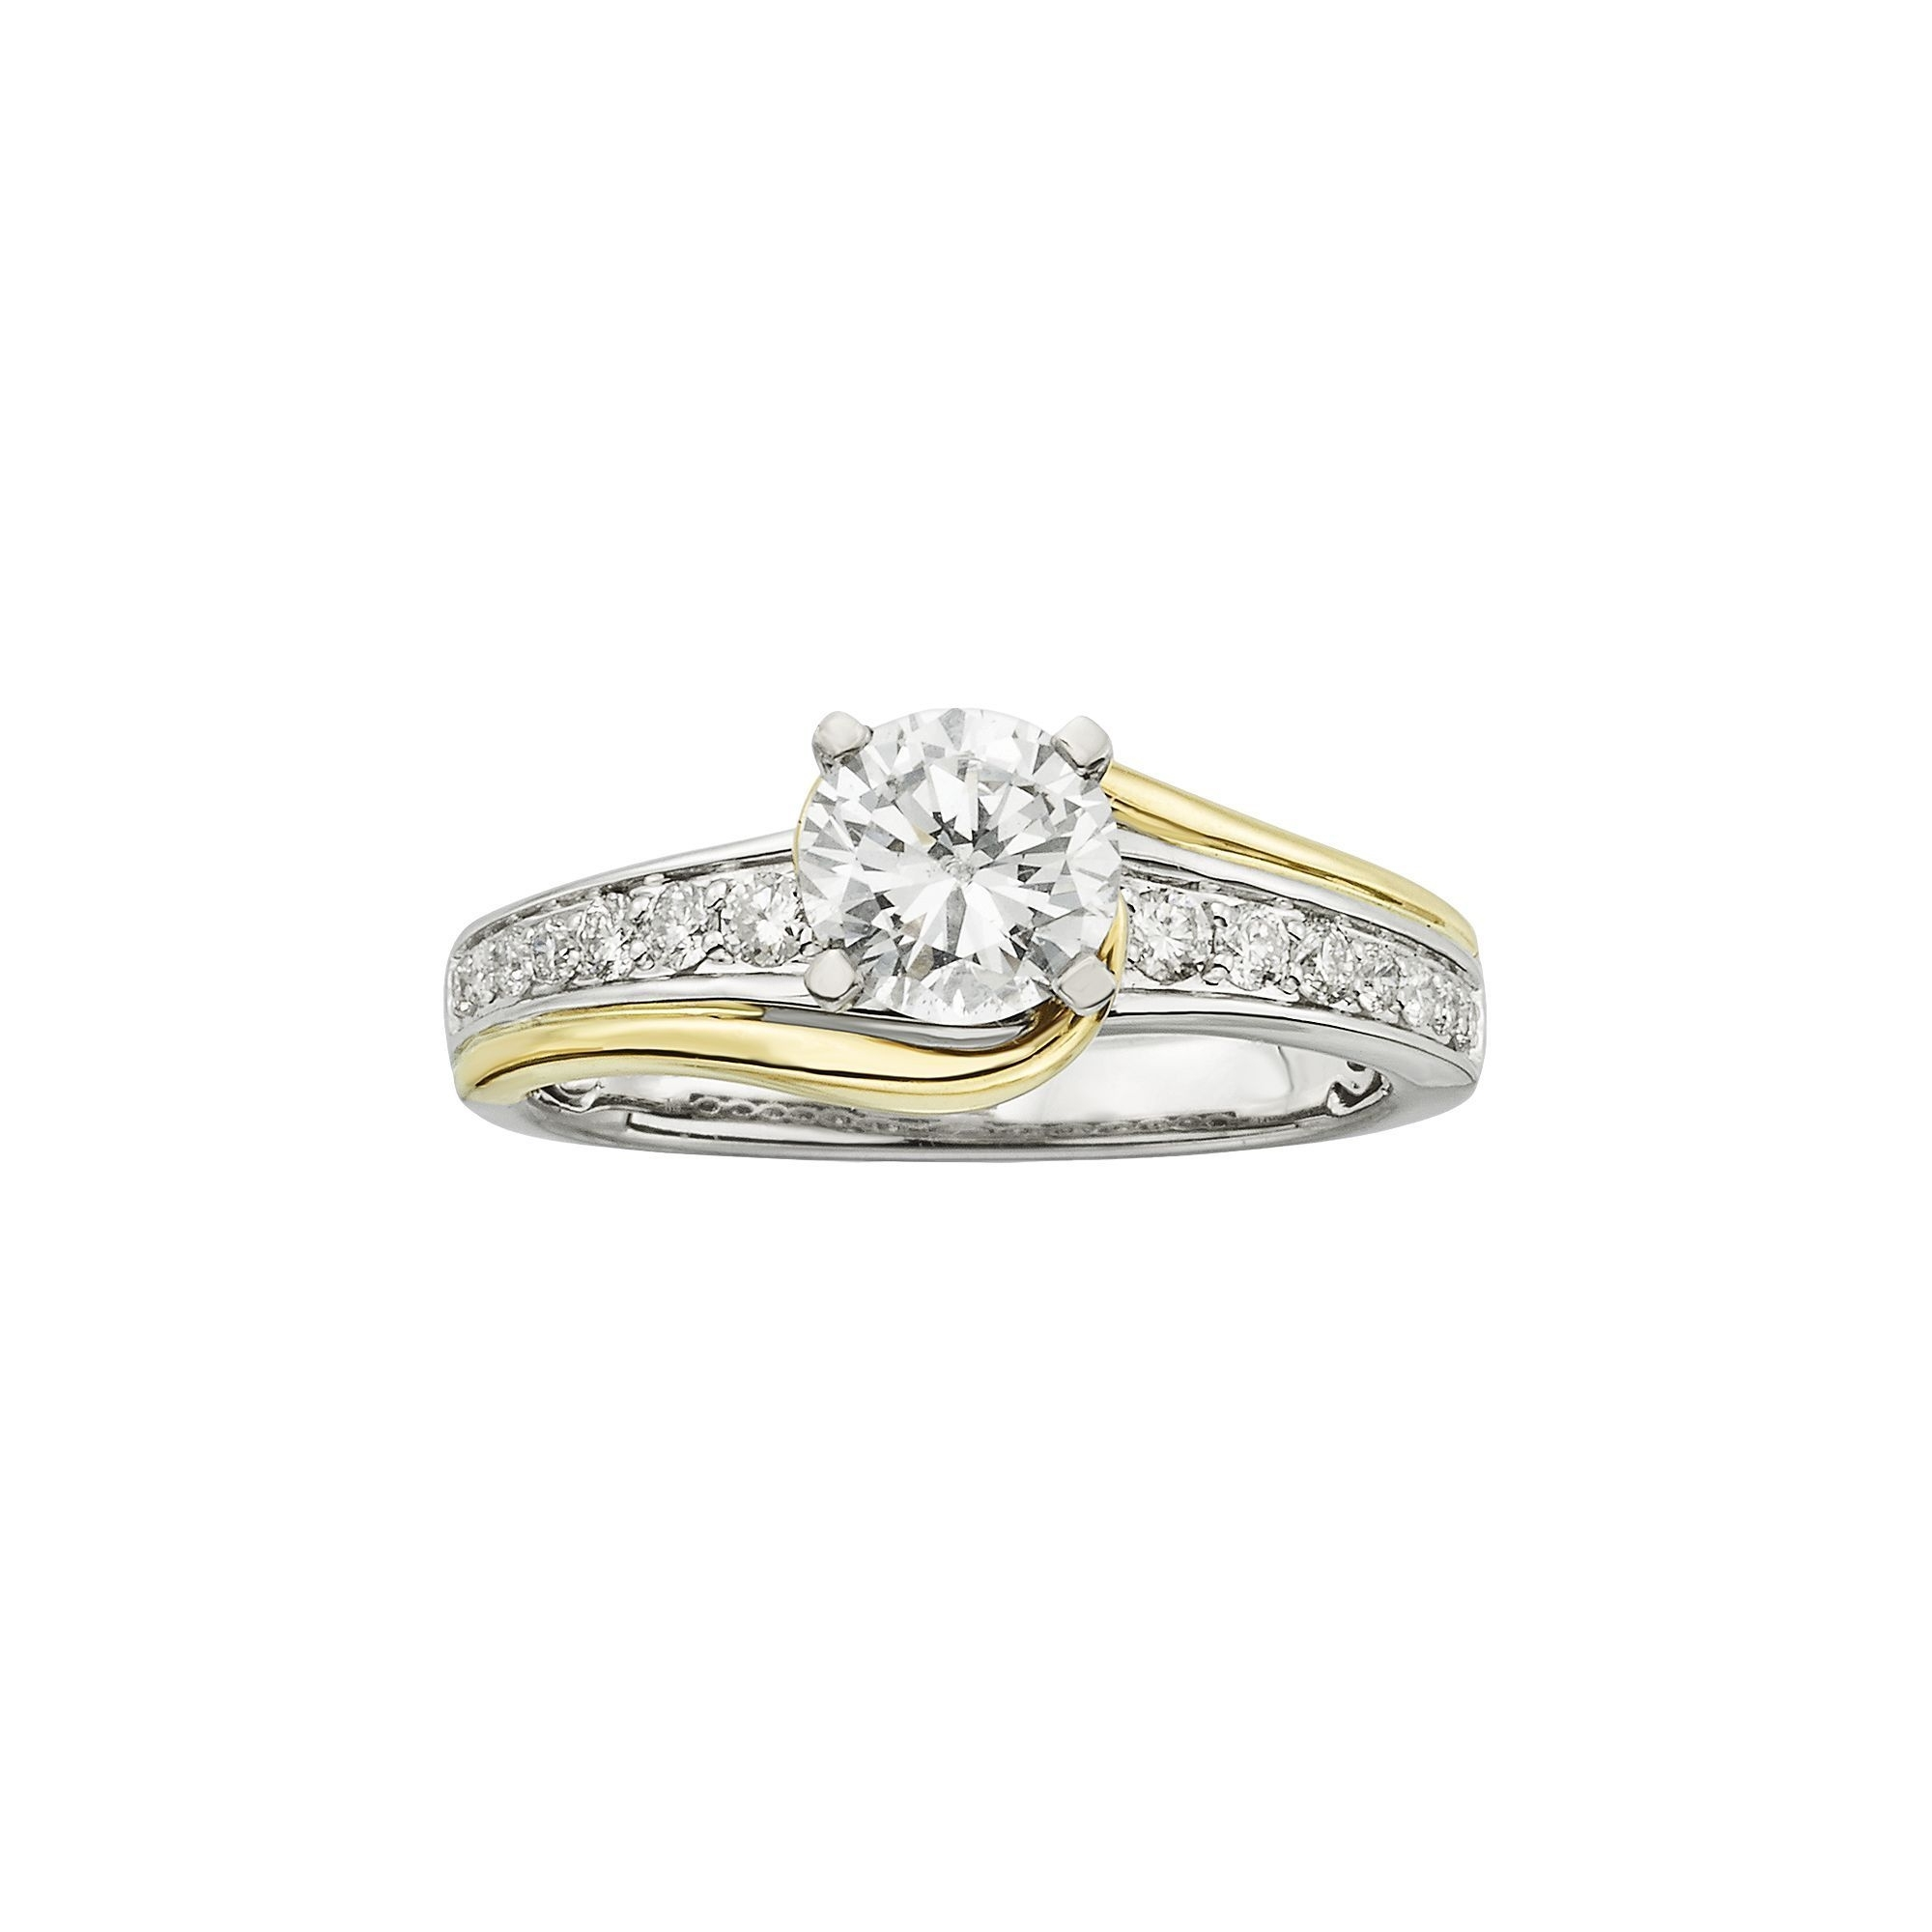 Mesmerizing Engagement Ring Swirl Band With Kohl S 14K Gold Two Tone Regarding Most Recent Two Stone Diamond Swirl Bands In 14K Two Tone Gold (View 12 of 15)